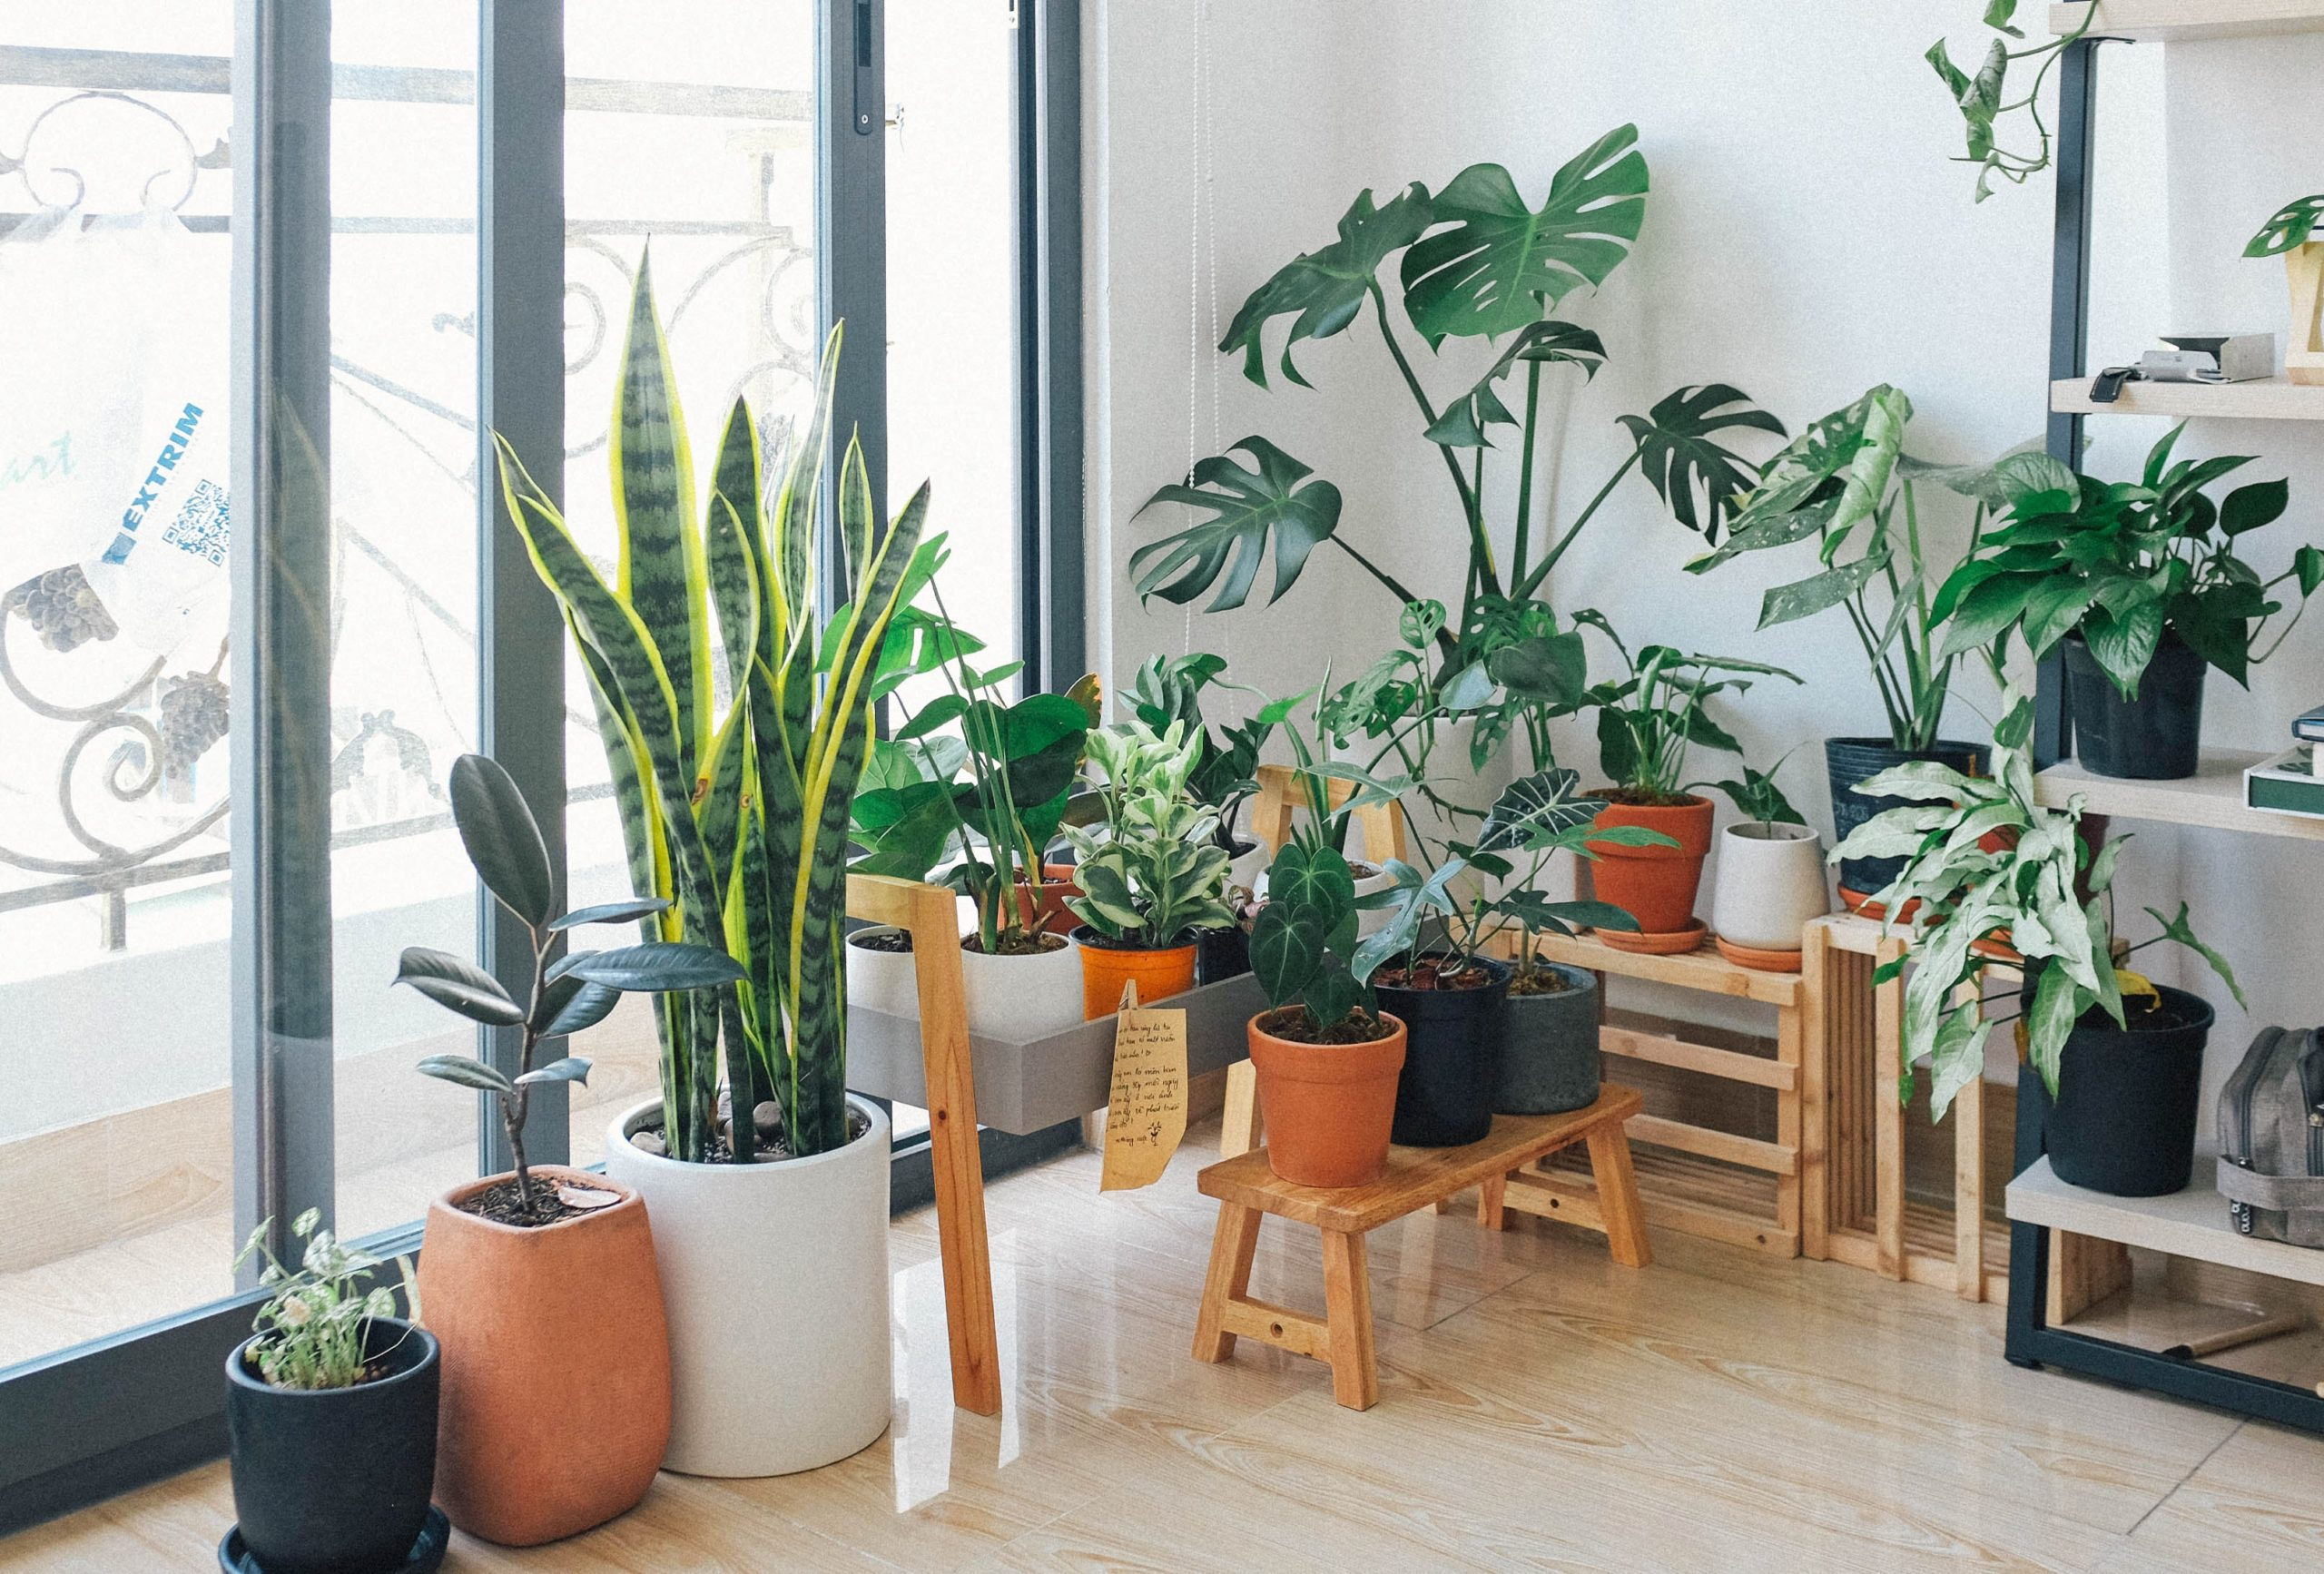 10 Best Indoor Plants for your home and office